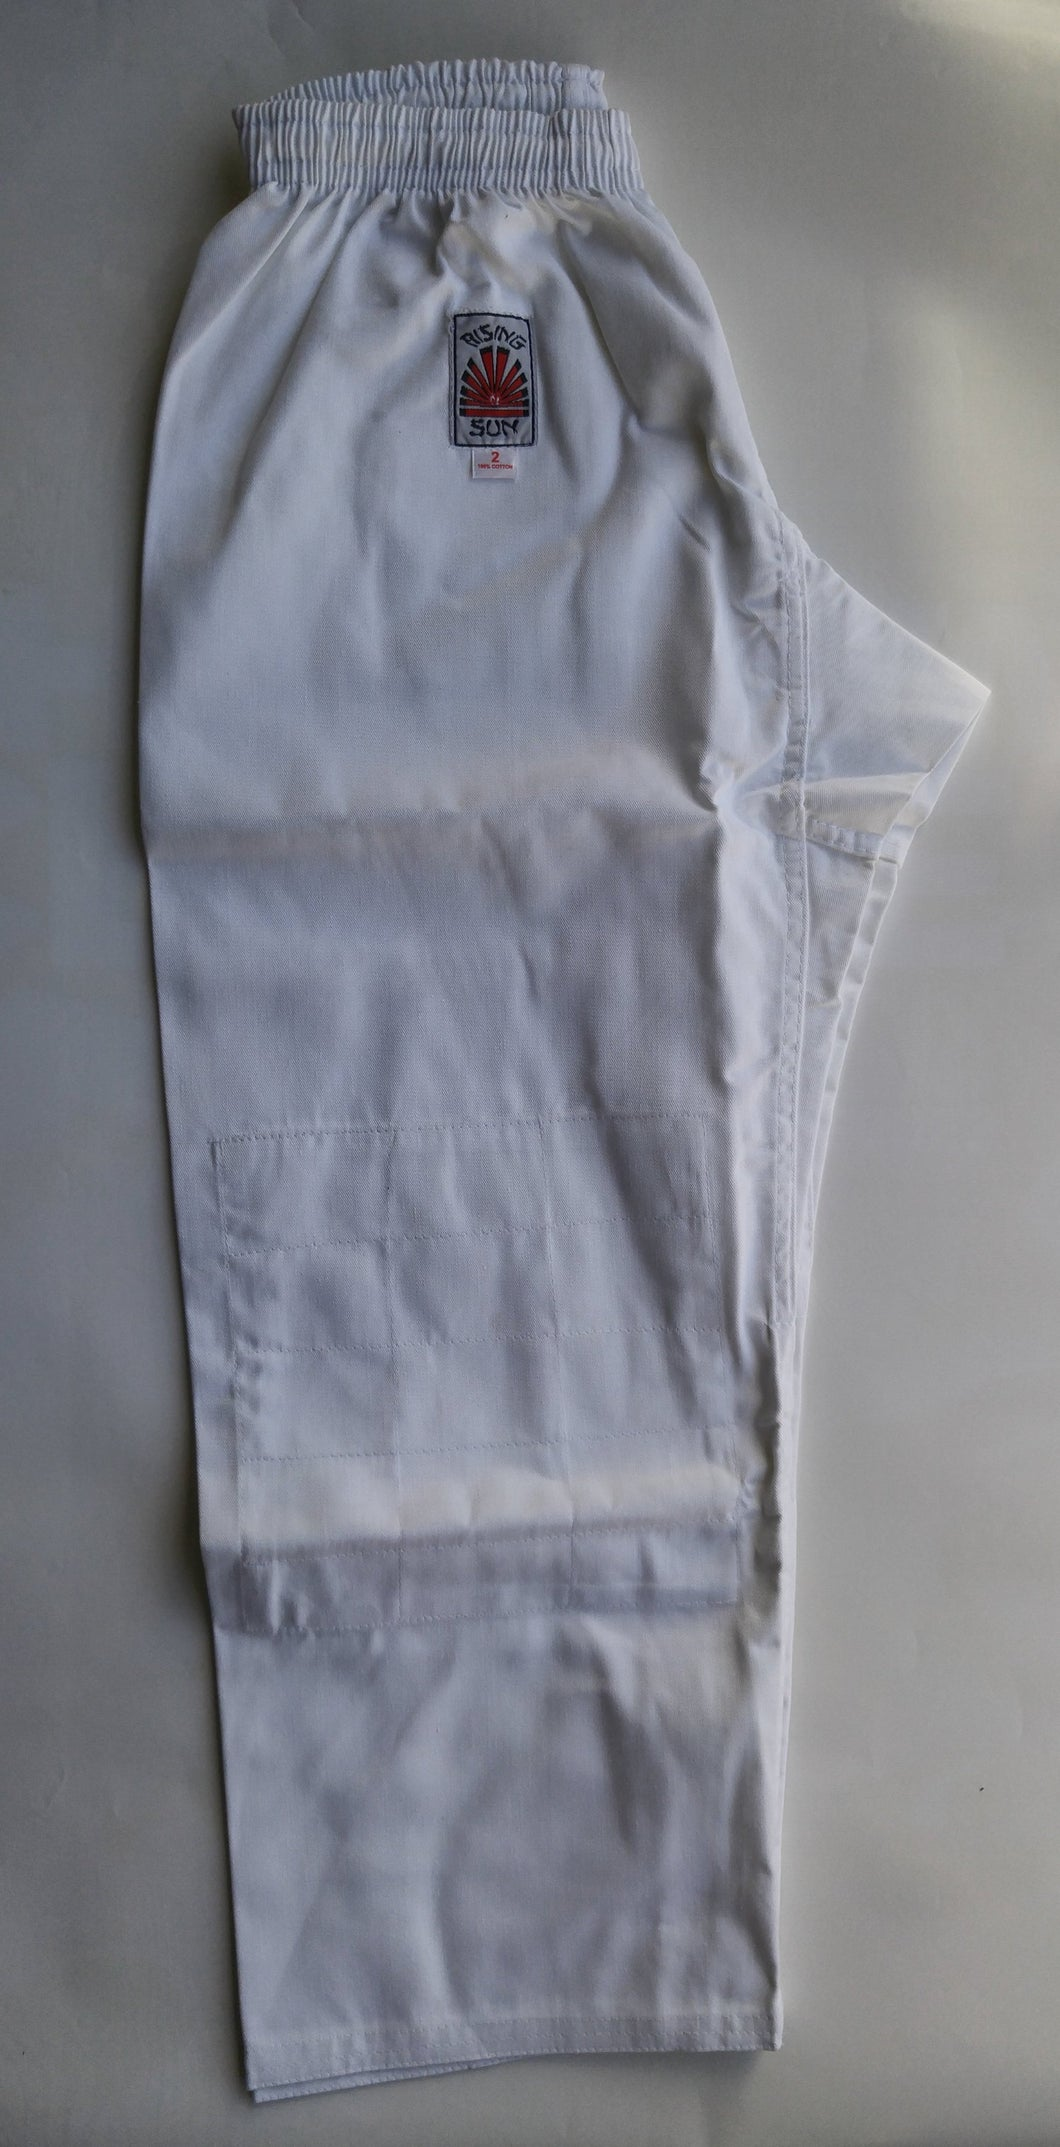 Rising Sun Judo Pant - White Colour